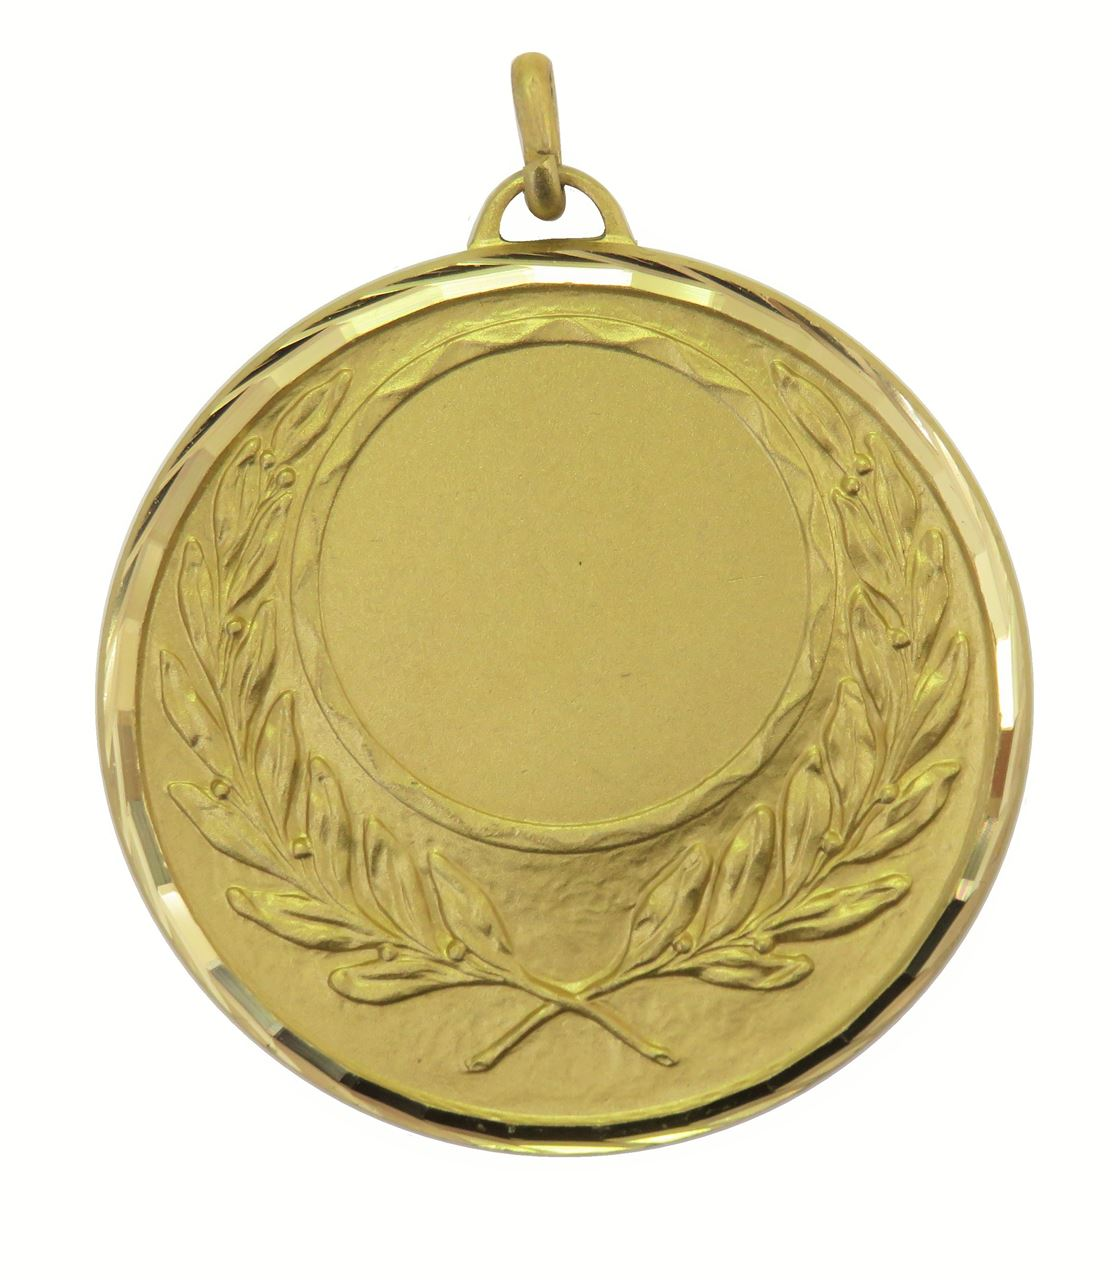 Gold Faceted Wreath Medal (size: 50mm) - 5605F